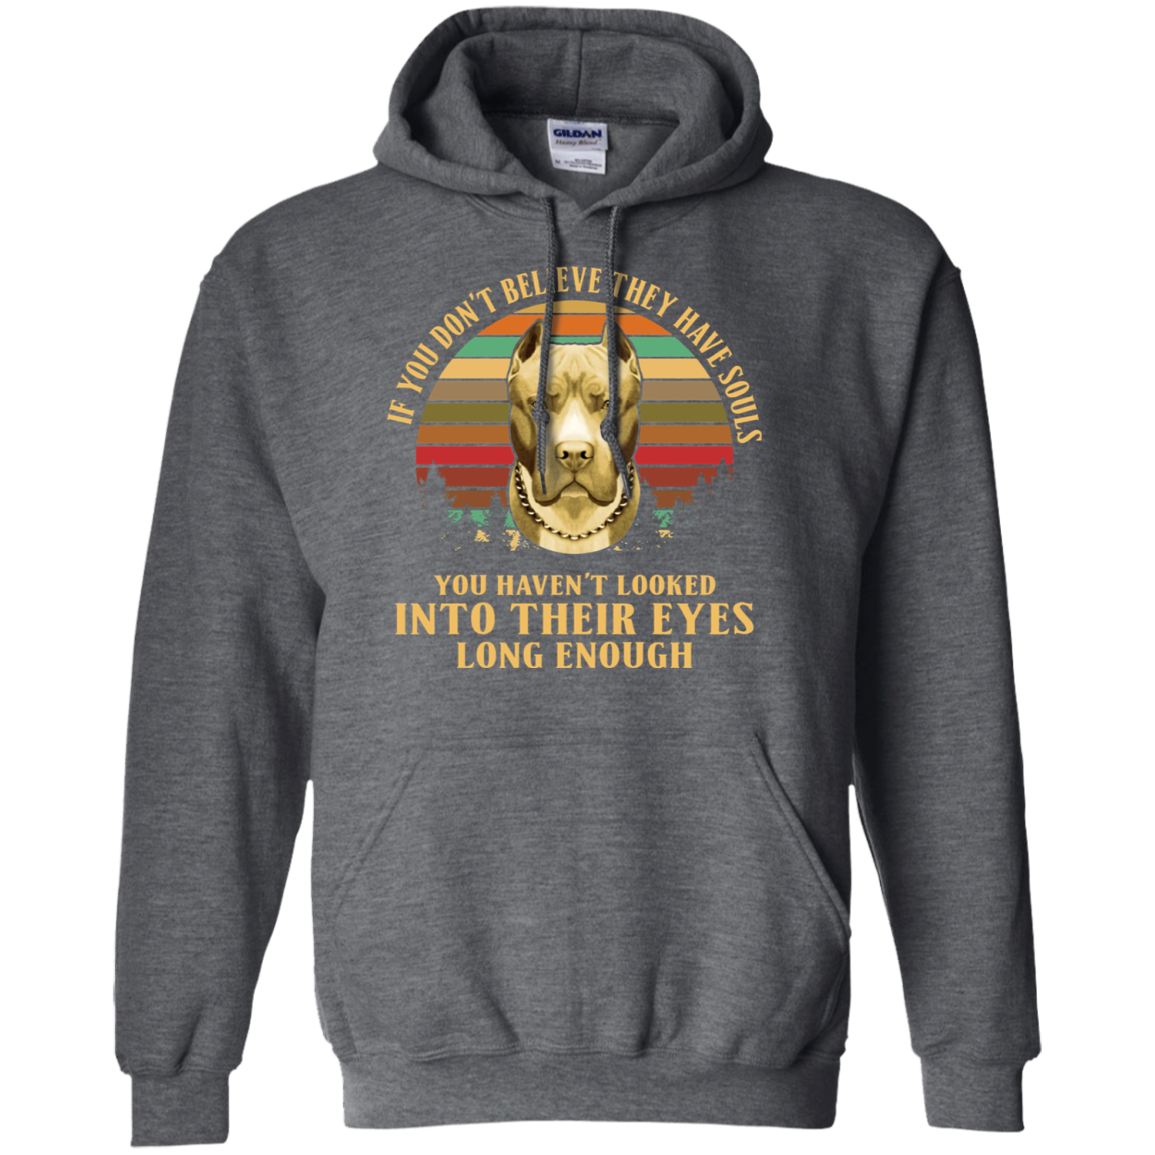 Pitbull If U Don't Believe They Have Souls Vintage G185 Dark Heather Hoodie